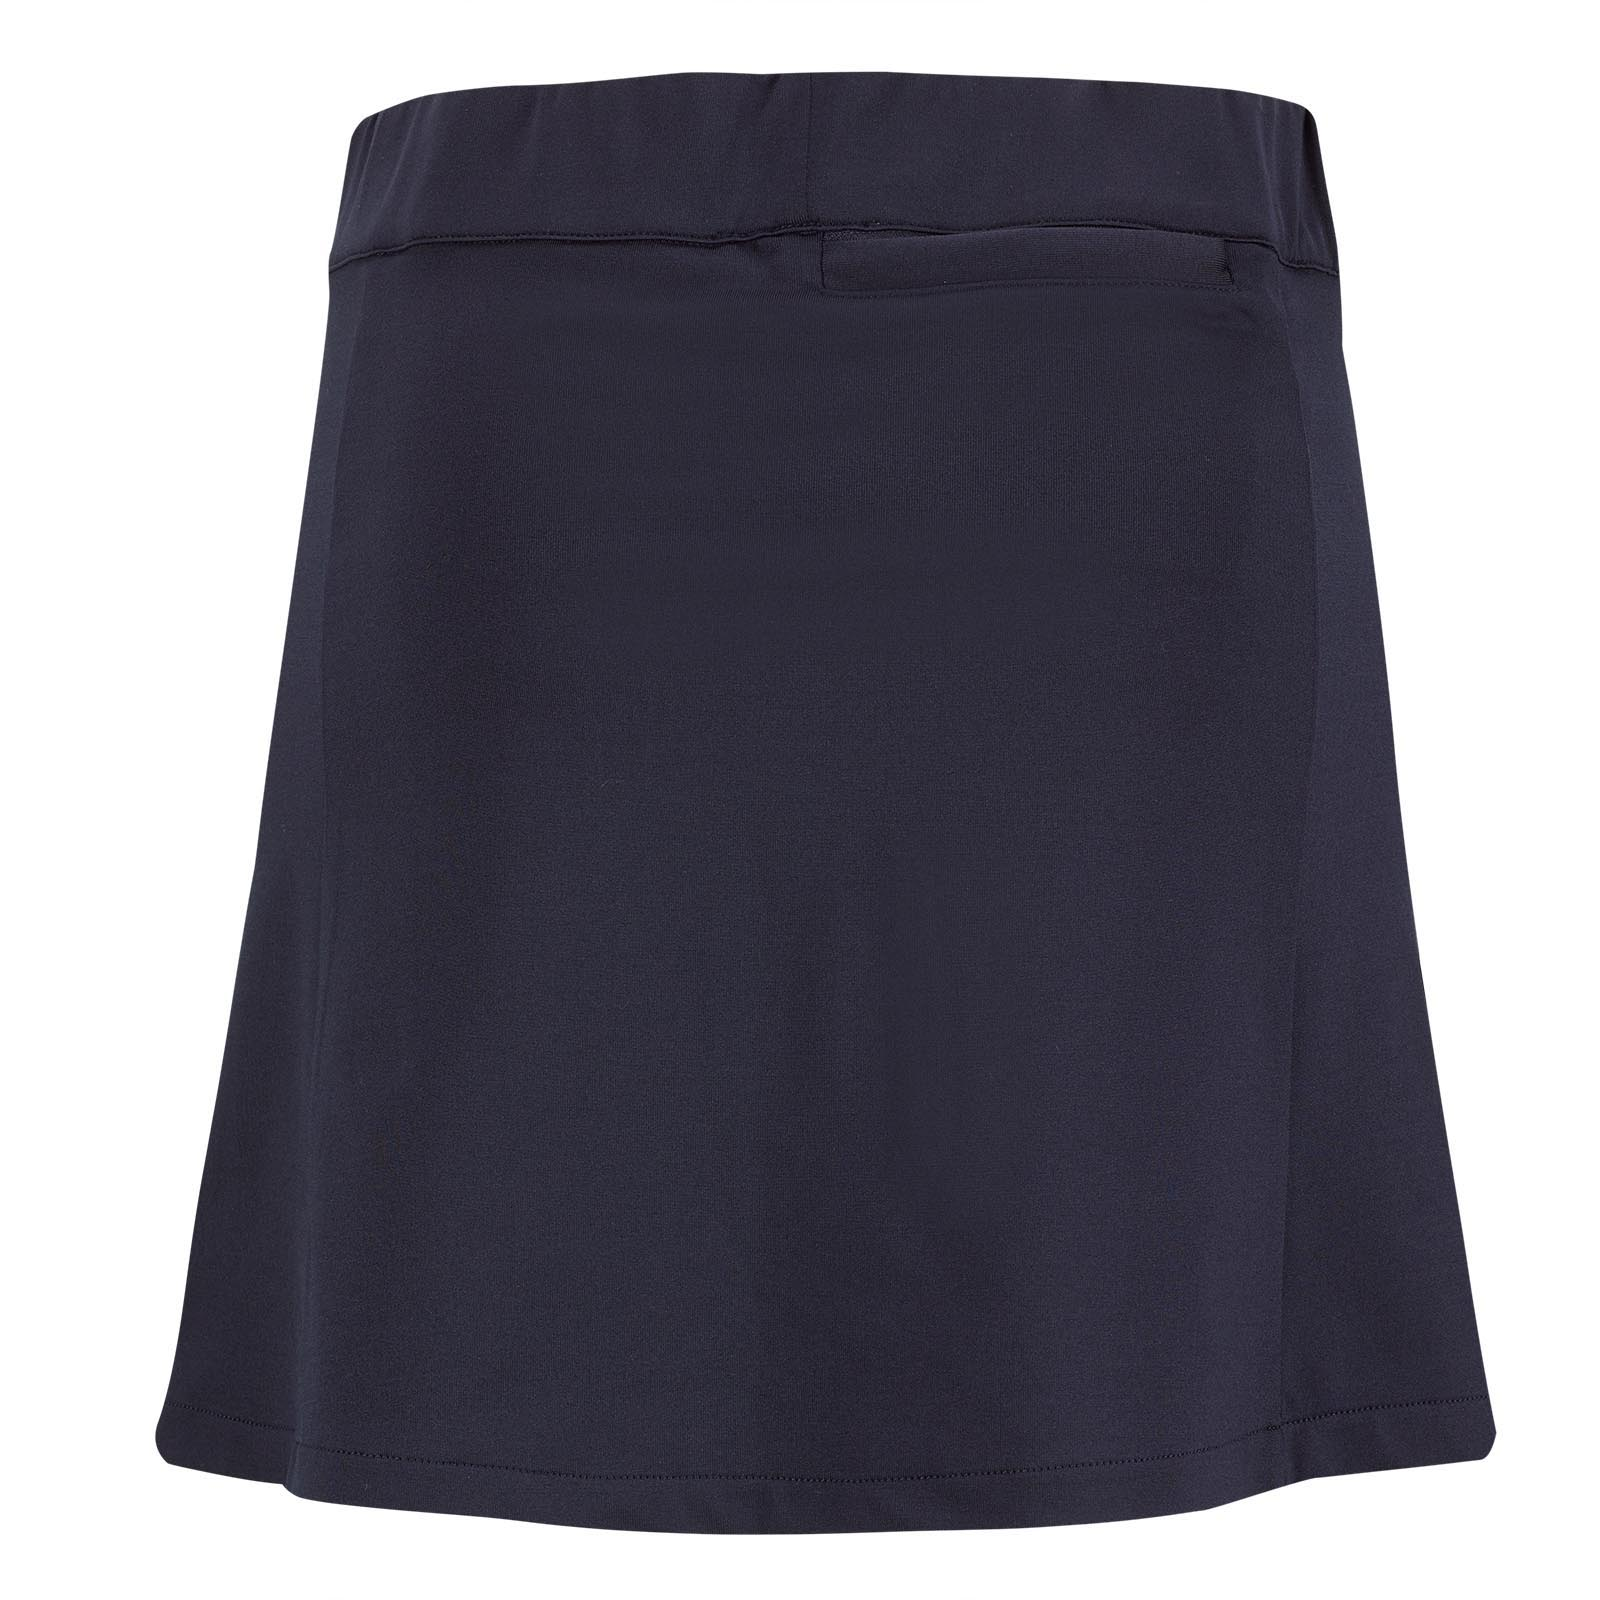 Super Short Damen Golfskort aus elastischem Stretch-Jersey